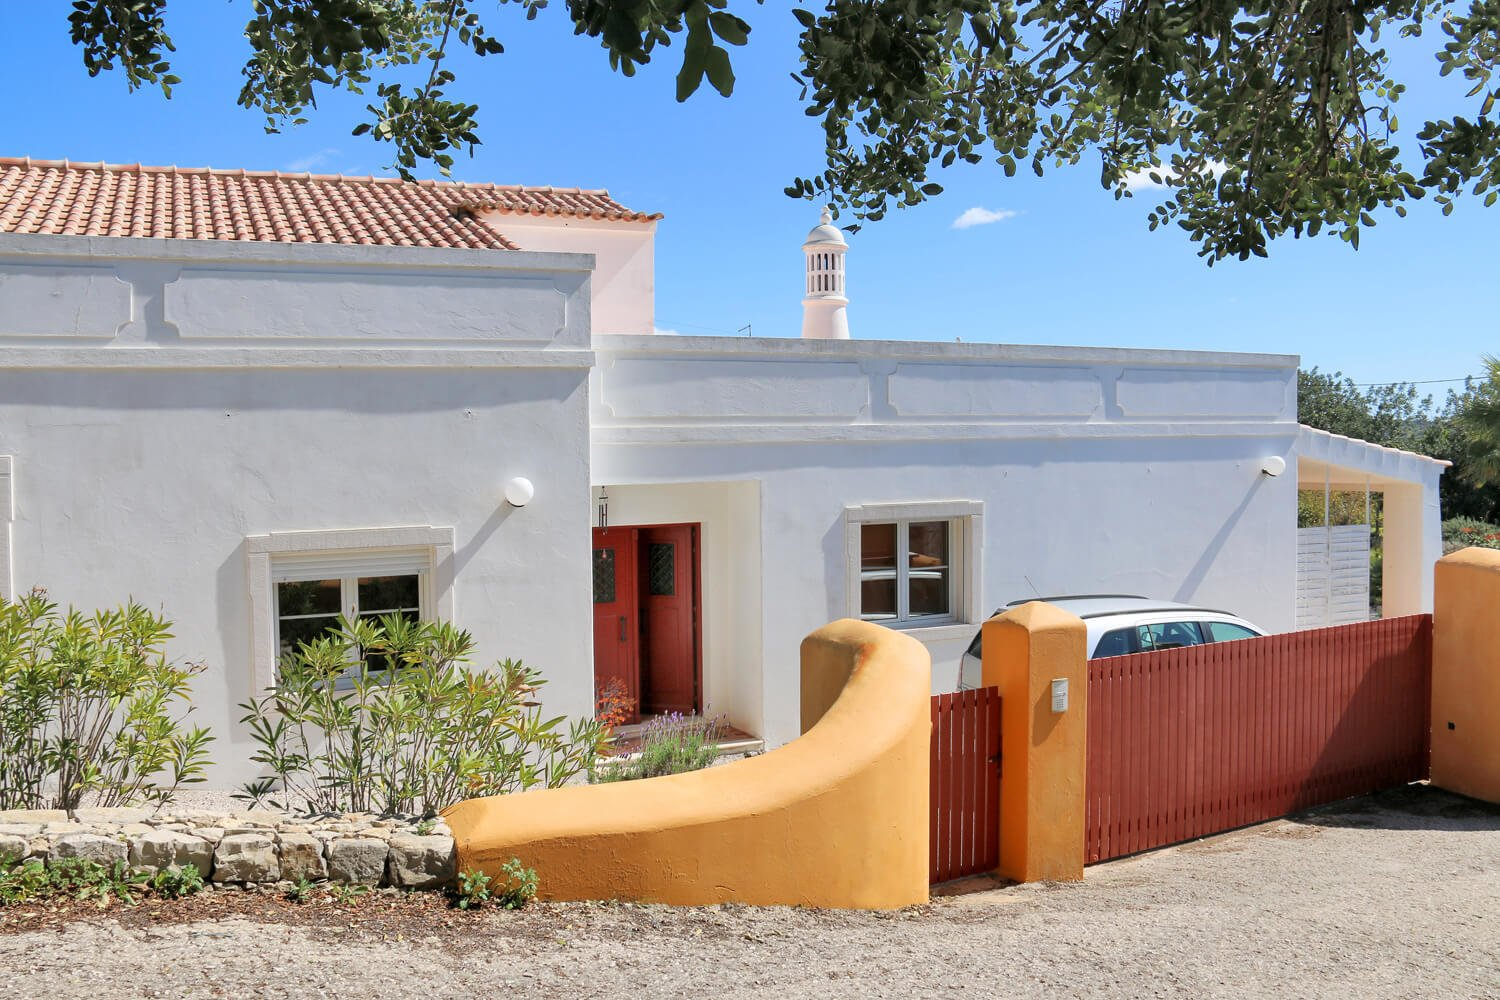 4 Bedroom Villa Loule, Central Algarve Ref: JV10330